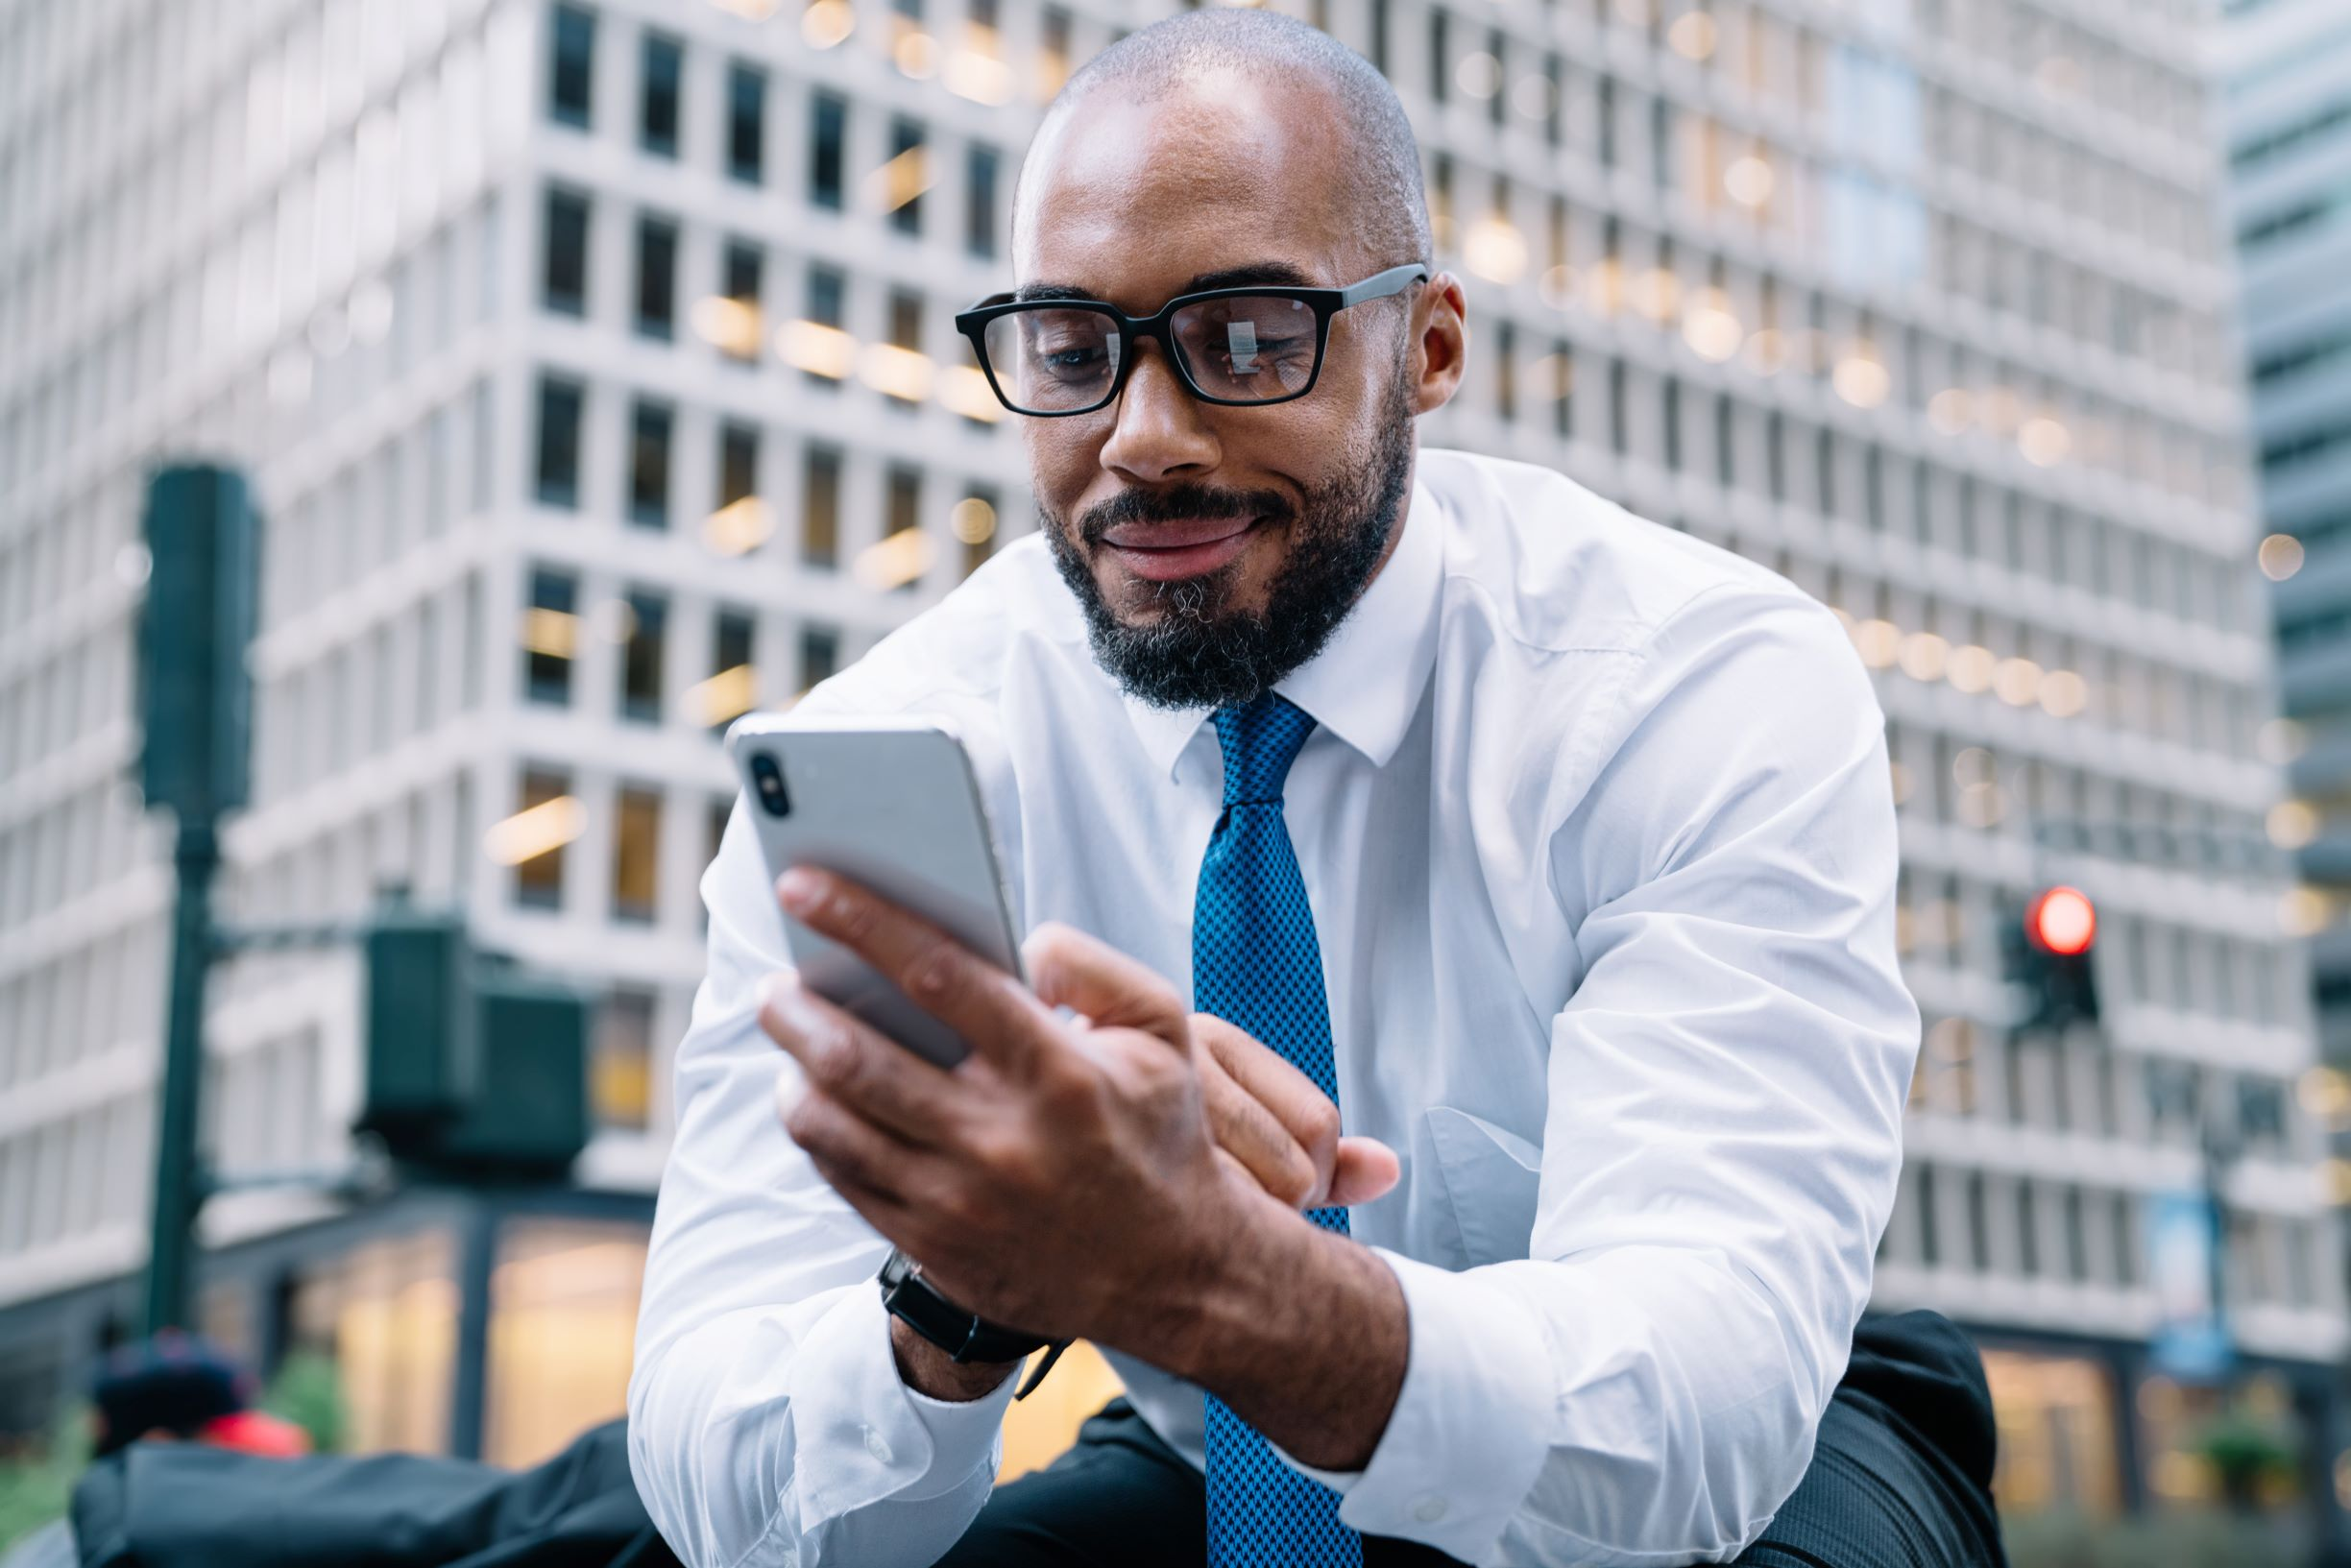 attorney is pleased to discover a new live call coming to his phone to help find a new client